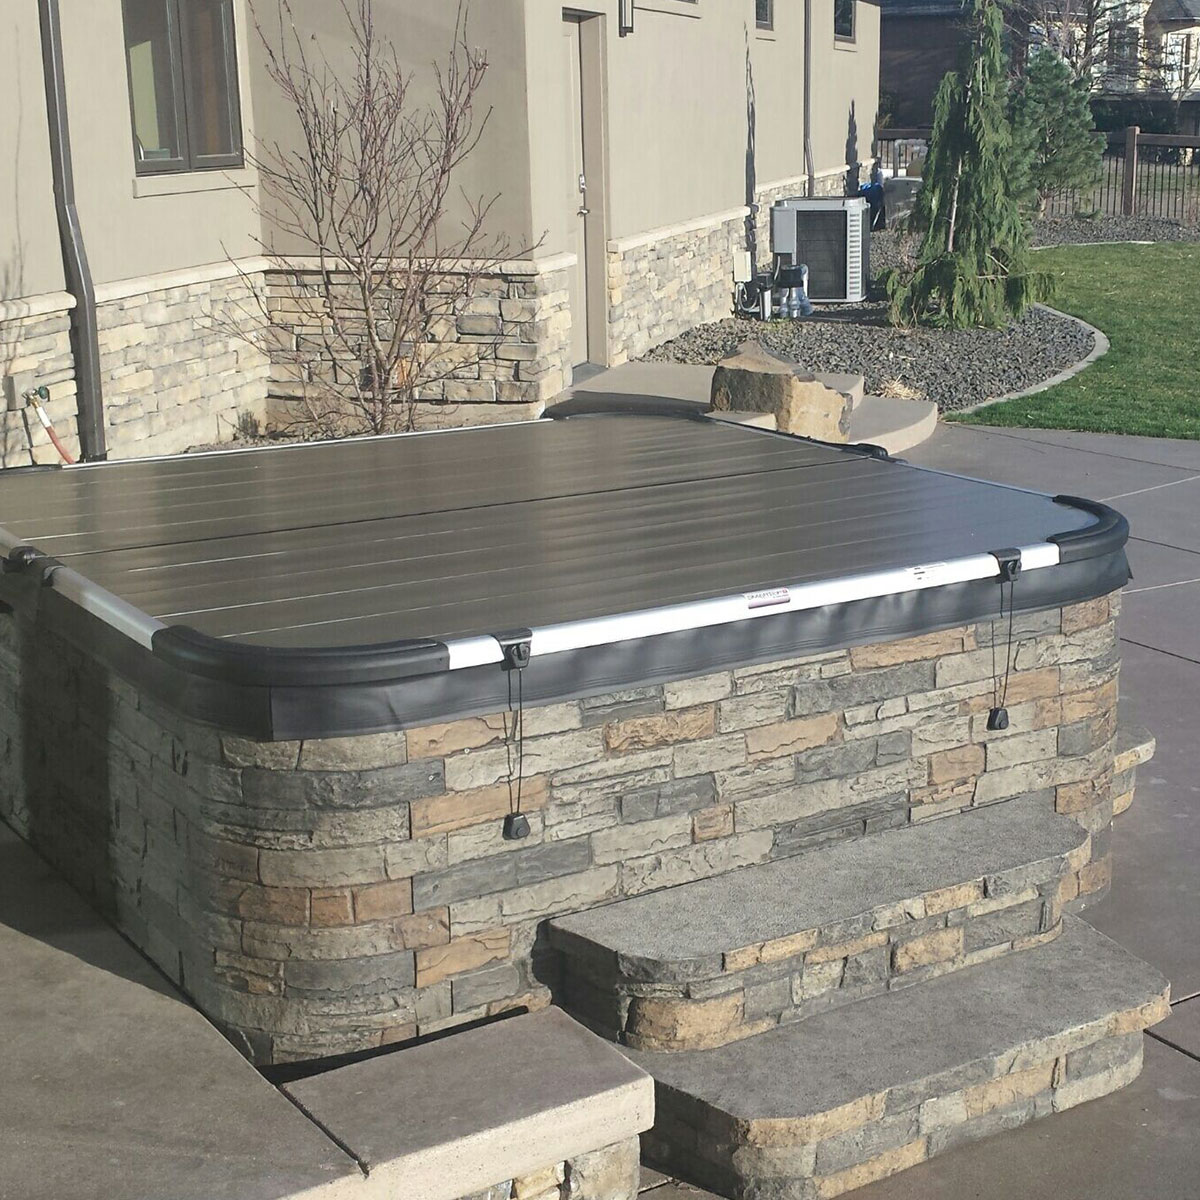 Are you tired of vinyl hot tub covers? Time to step up to Smartop